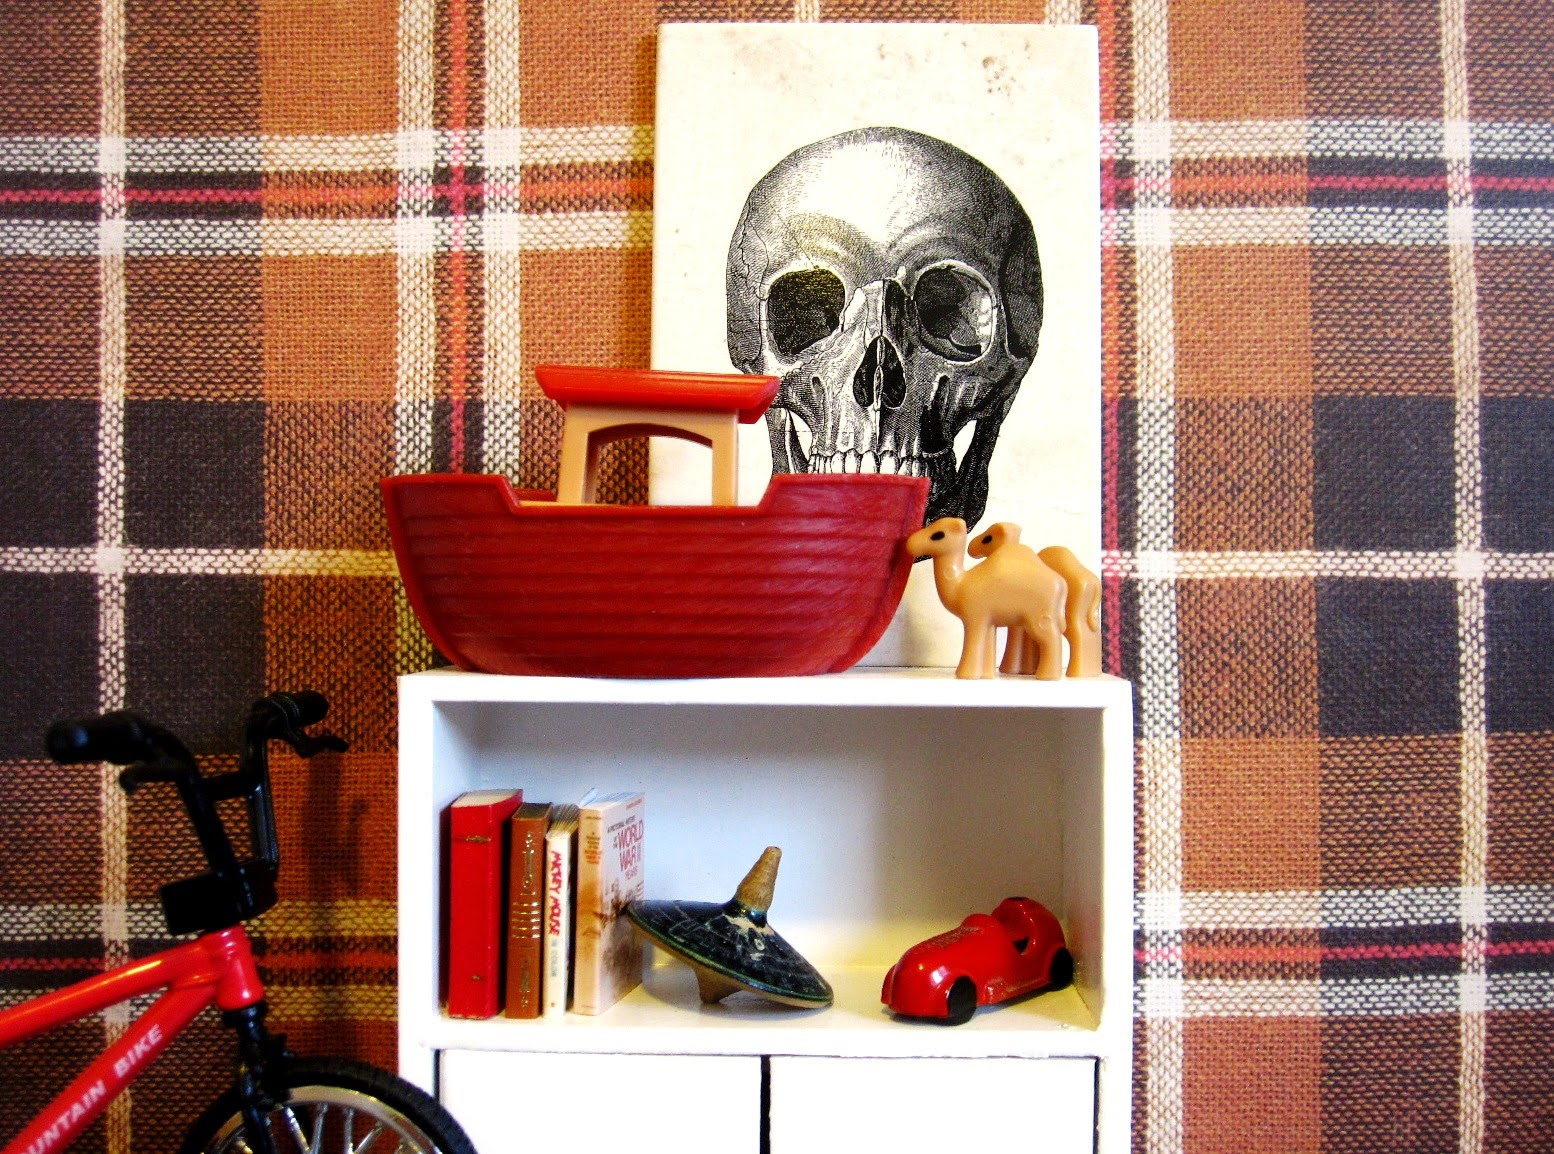 Modern dolls' house scene of part of a boy's room, with fawn, red and white tartan wallpaper and a white shelf holding a Noah's ark, a toy car, some books and a spinning top. To one side is a BMX-style bike.